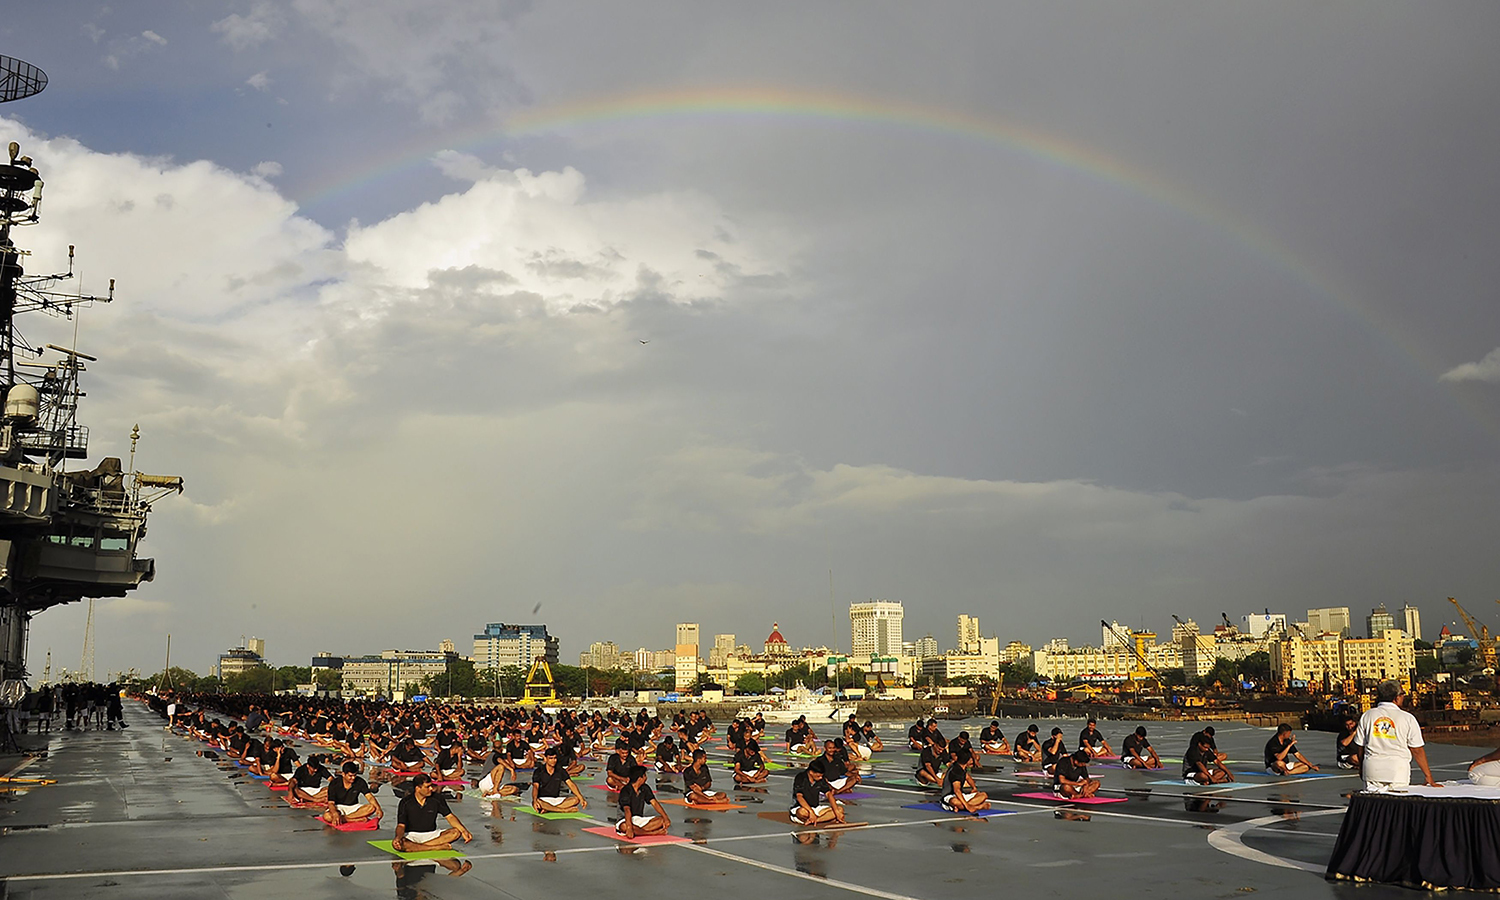 In this photograph released by the Indian Press Information Bureau (PIB), Indian Armed Forces personnel take part in a yoga sesssion to mark International Yoga Day on the Indian Navy aircraft carrier INS Viraat in Mumbai. AFP